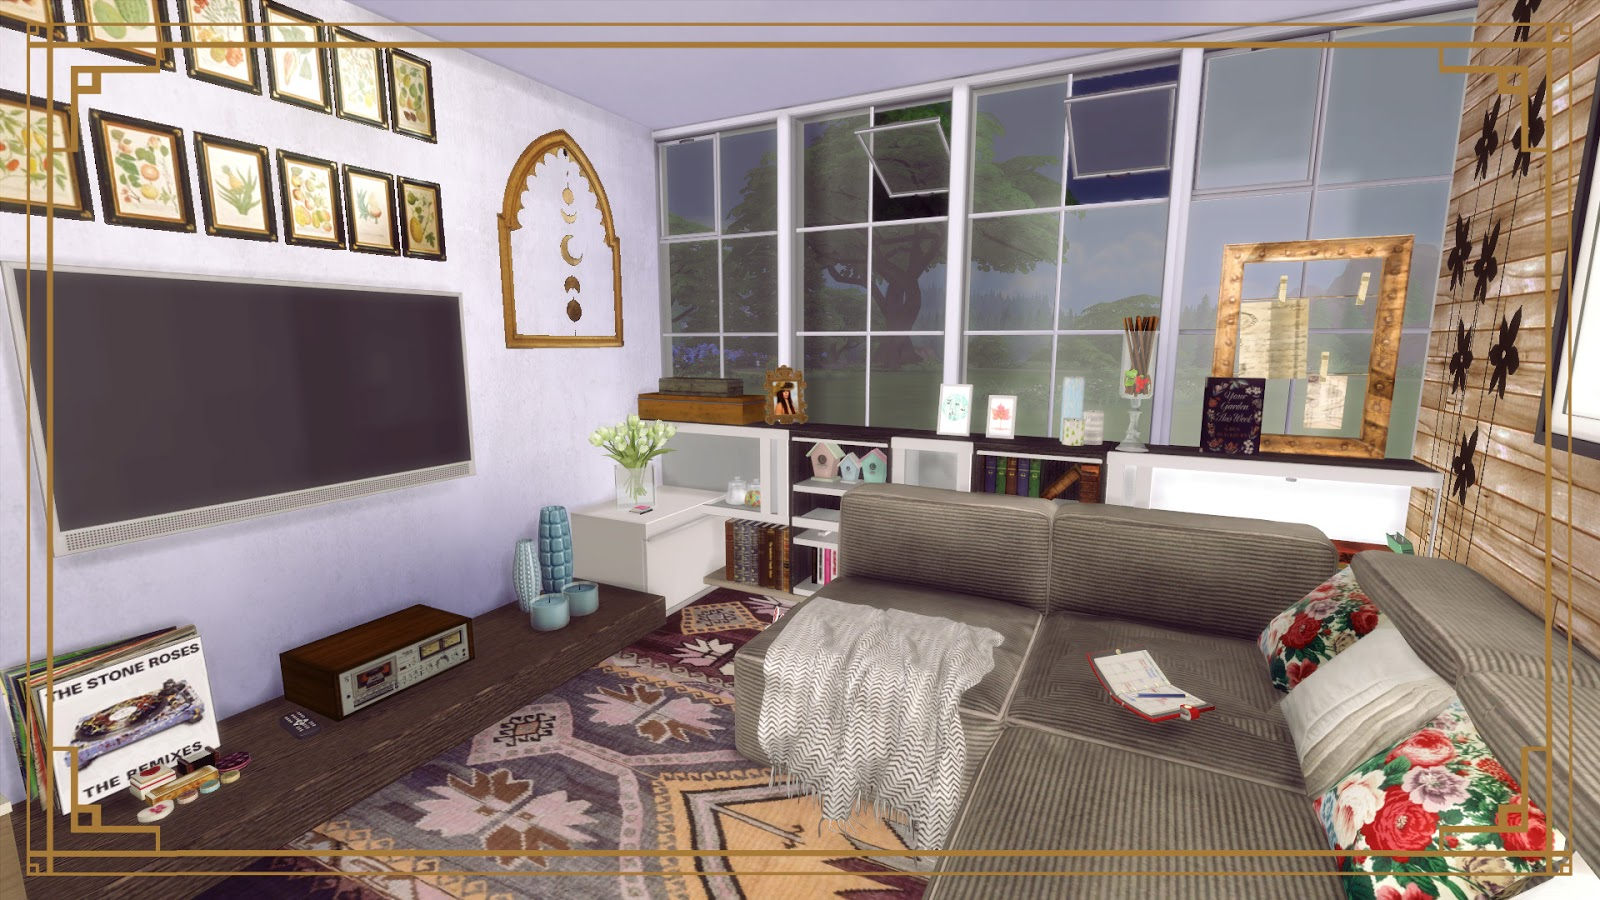 sims 4 cozy living room ii dinha. Black Bedroom Furniture Sets. Home Design Ideas